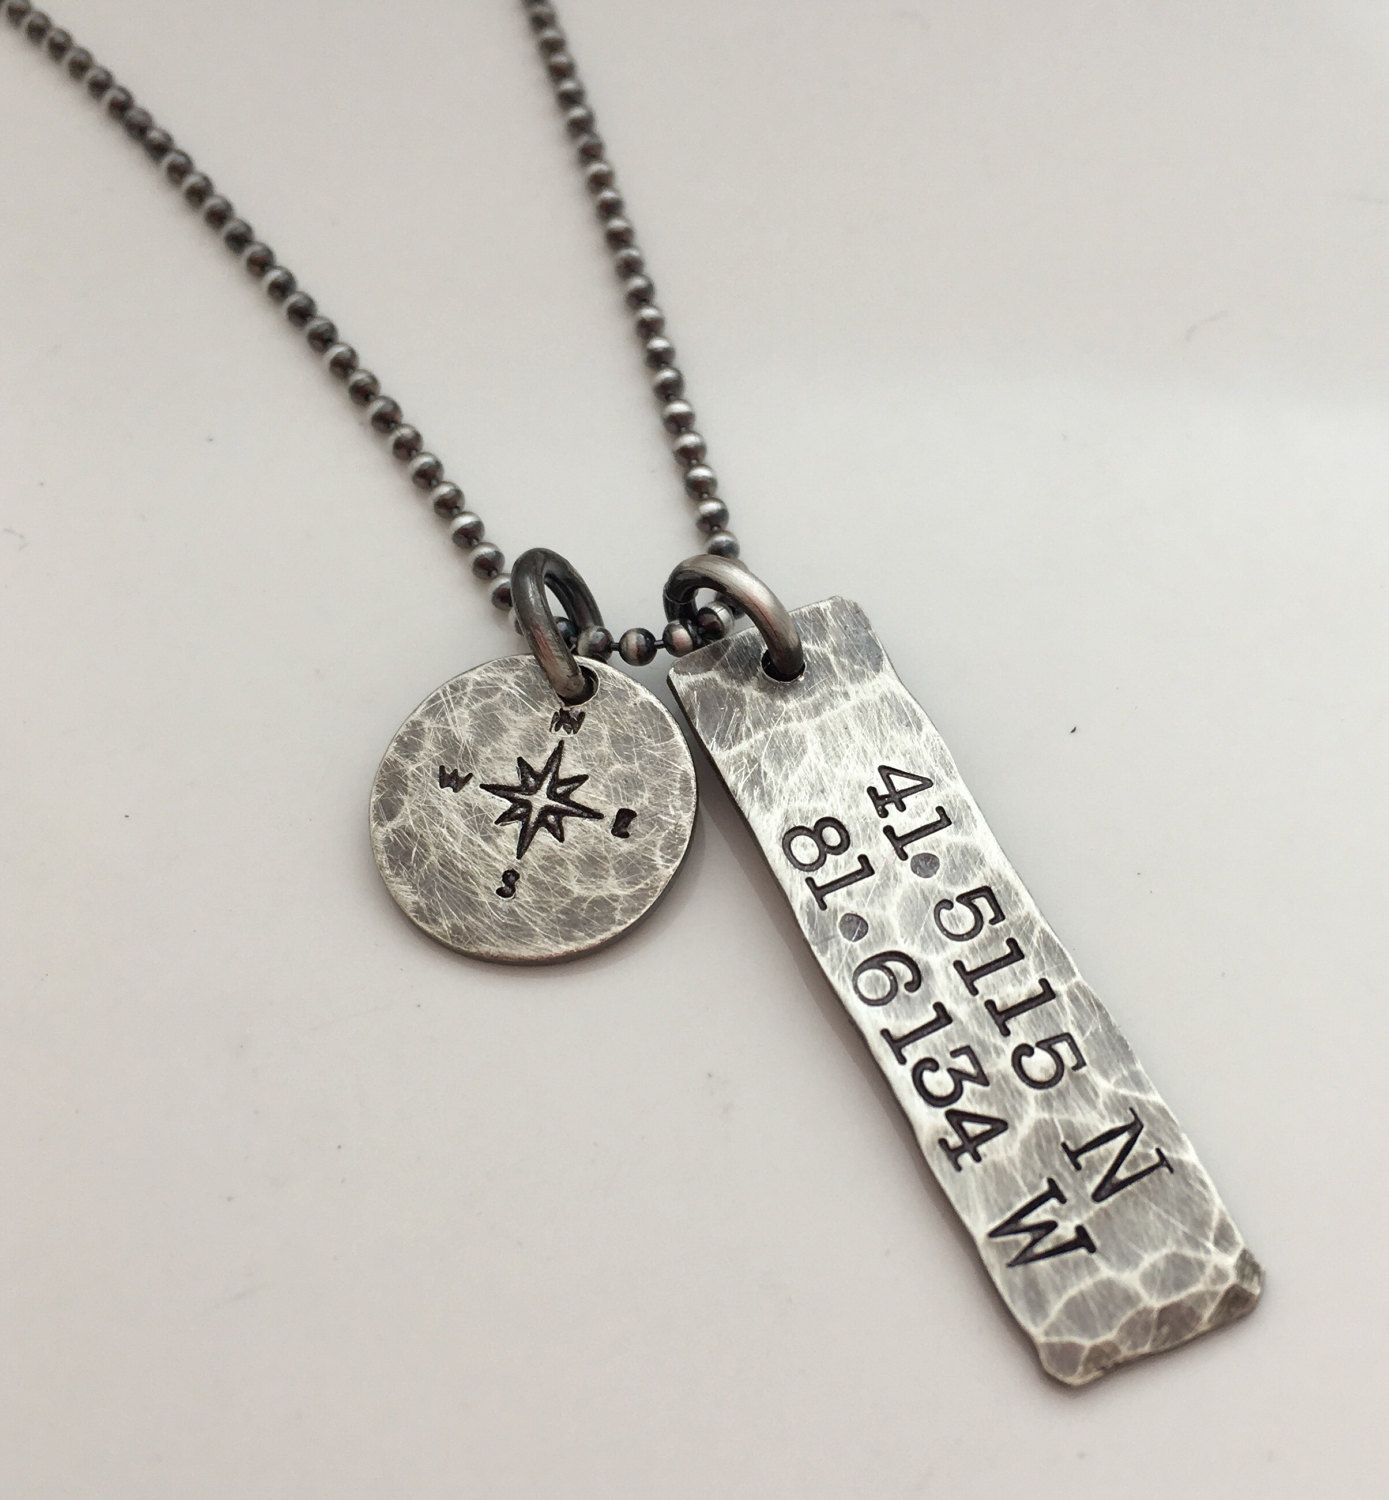 Graduation Gift For Him Silver Bar Necklace Custom Coordinates Men S Personalized Jewelry Custom Location Gift For Him Birthday Silver Bar Necklace Custom Coordinates Necklace Coordinates Necklaces